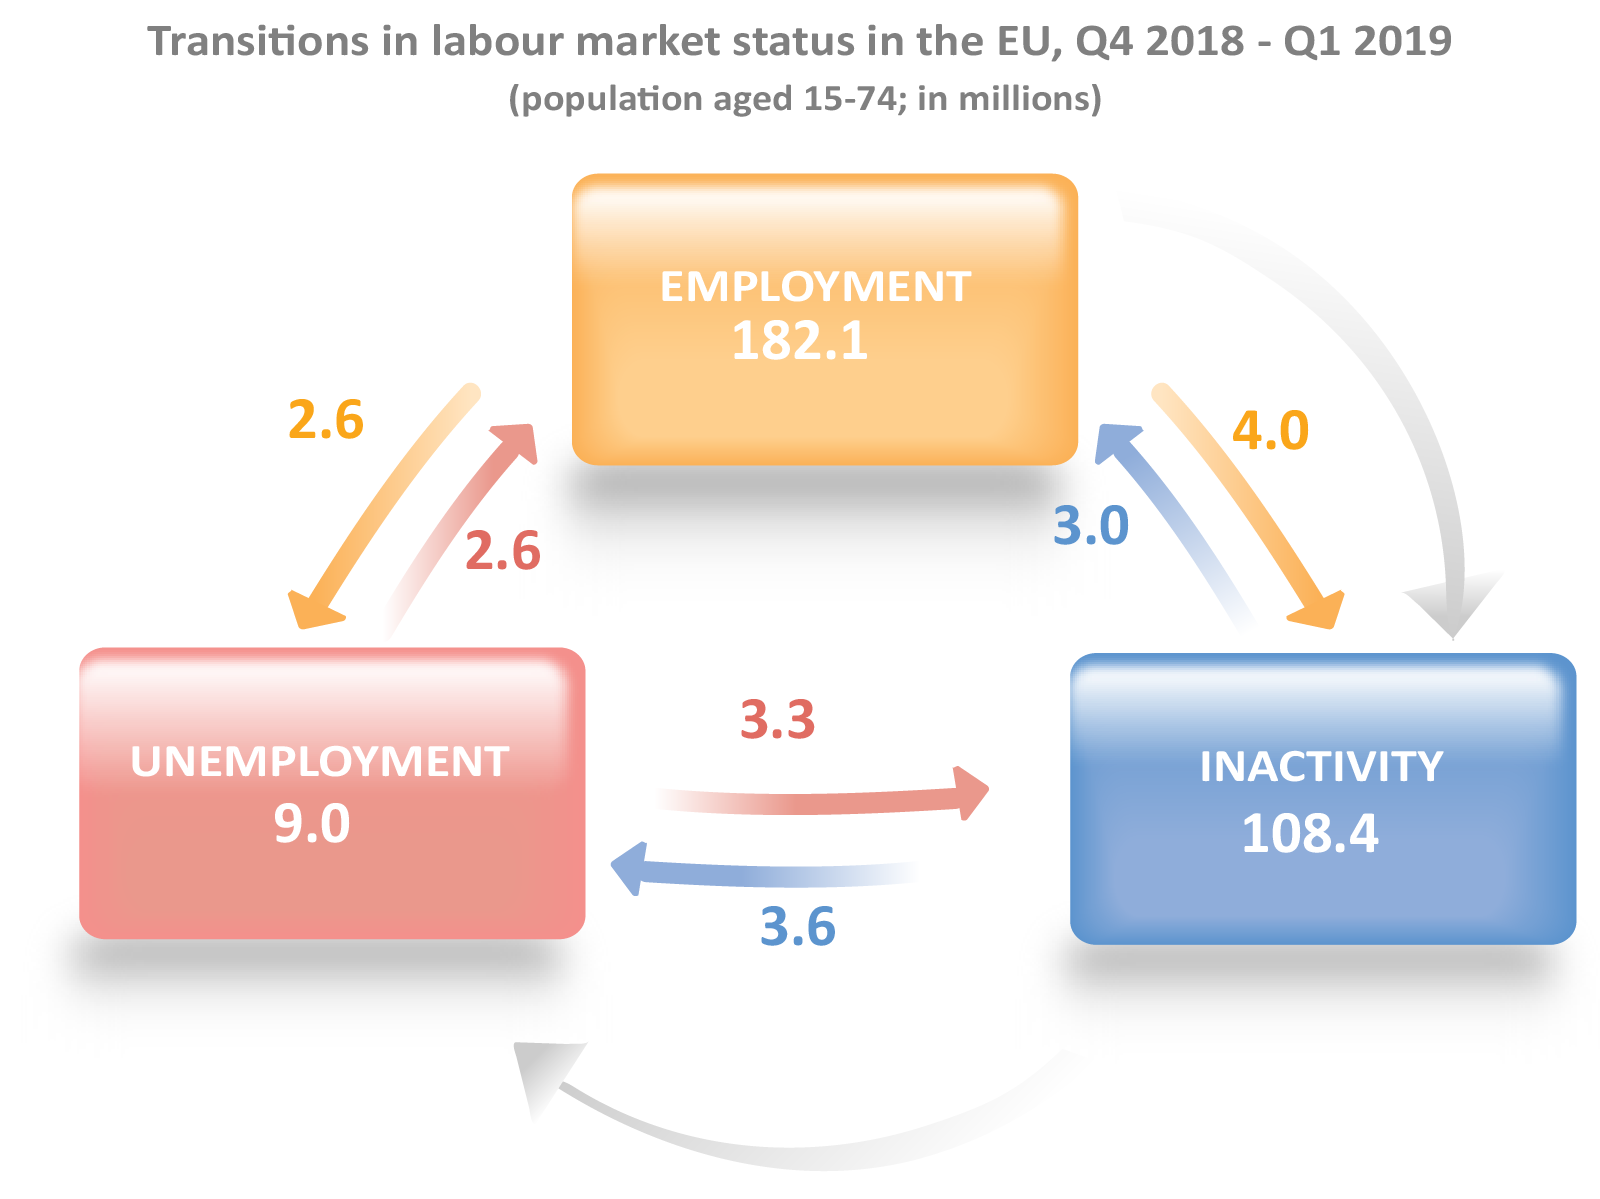 Graphic showing labour market flows from Q4 2018 to Q1 2019